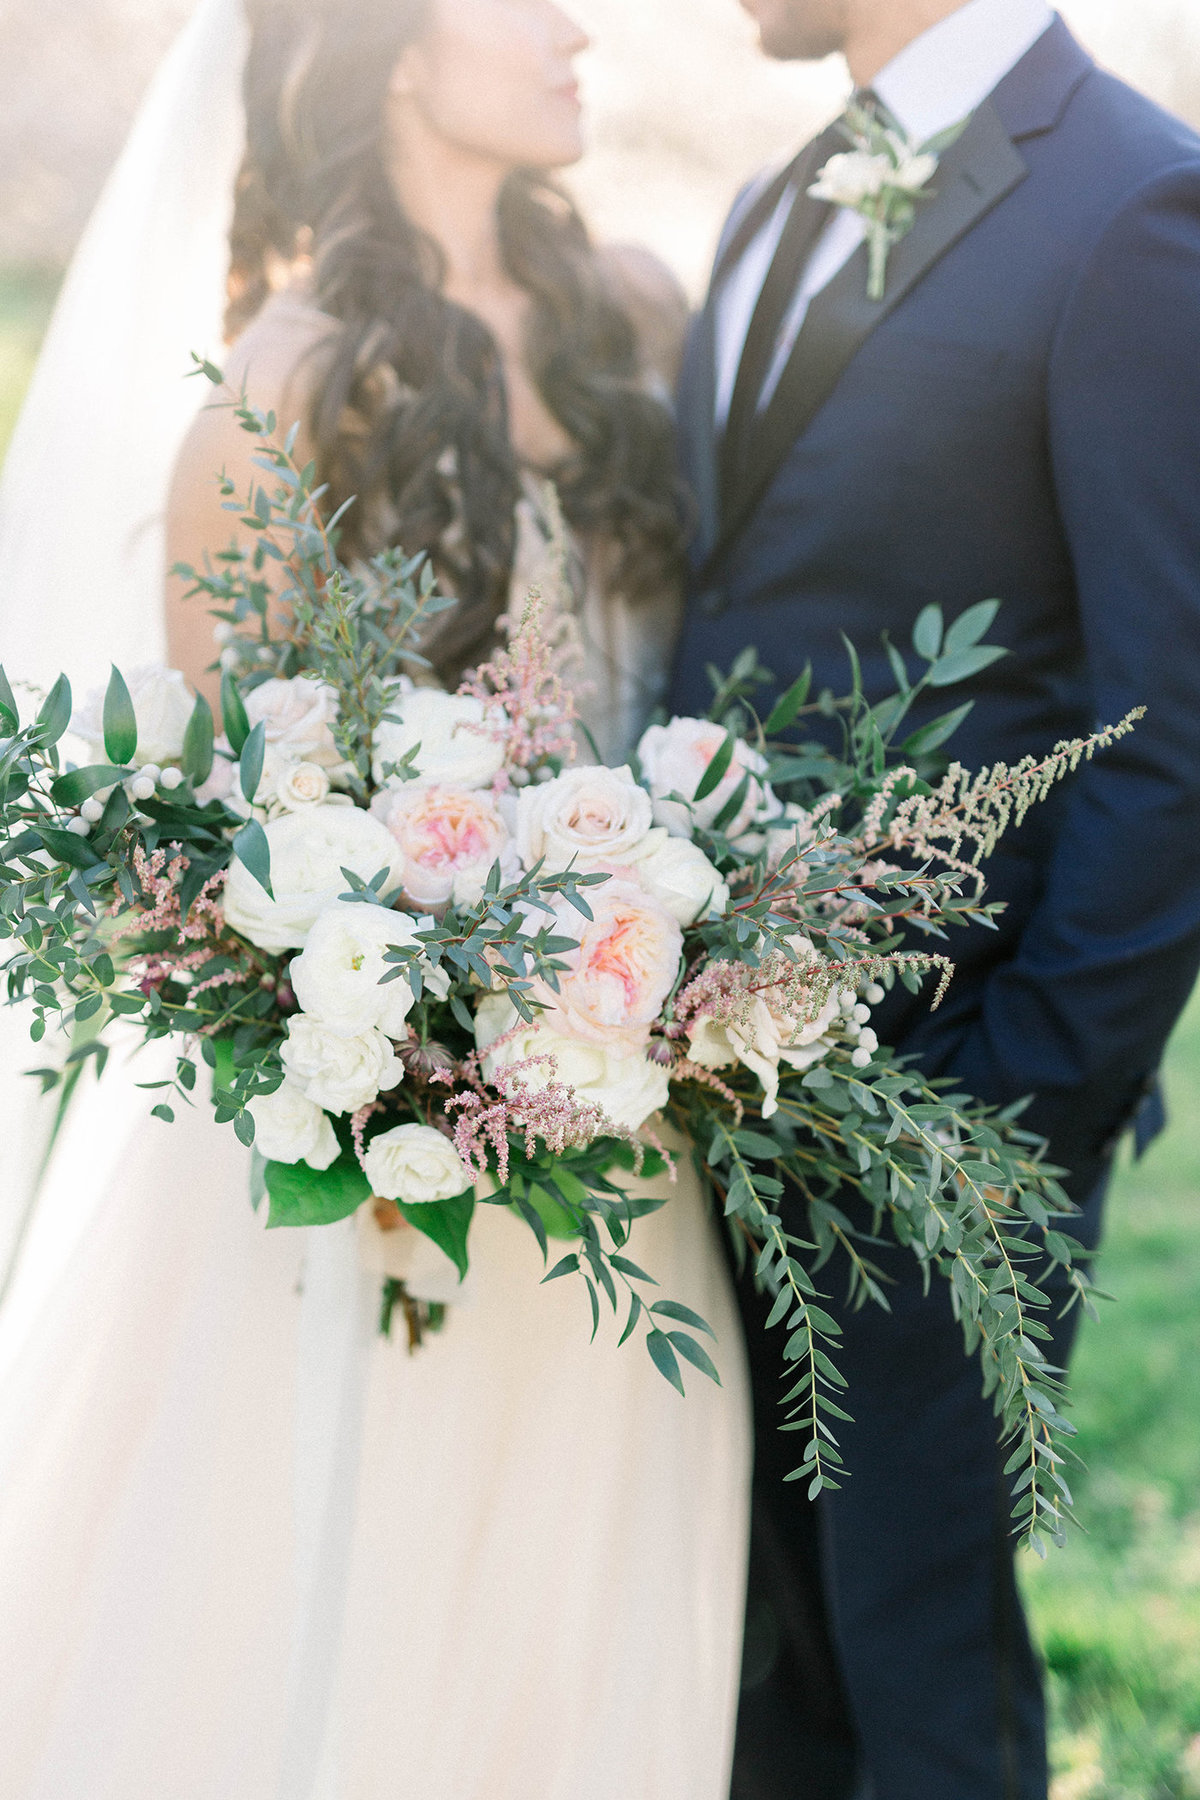 Cedarmont Nashville Editorial - Sarah Sunstrom Photography - Fine Art Wedding Photographer - 51